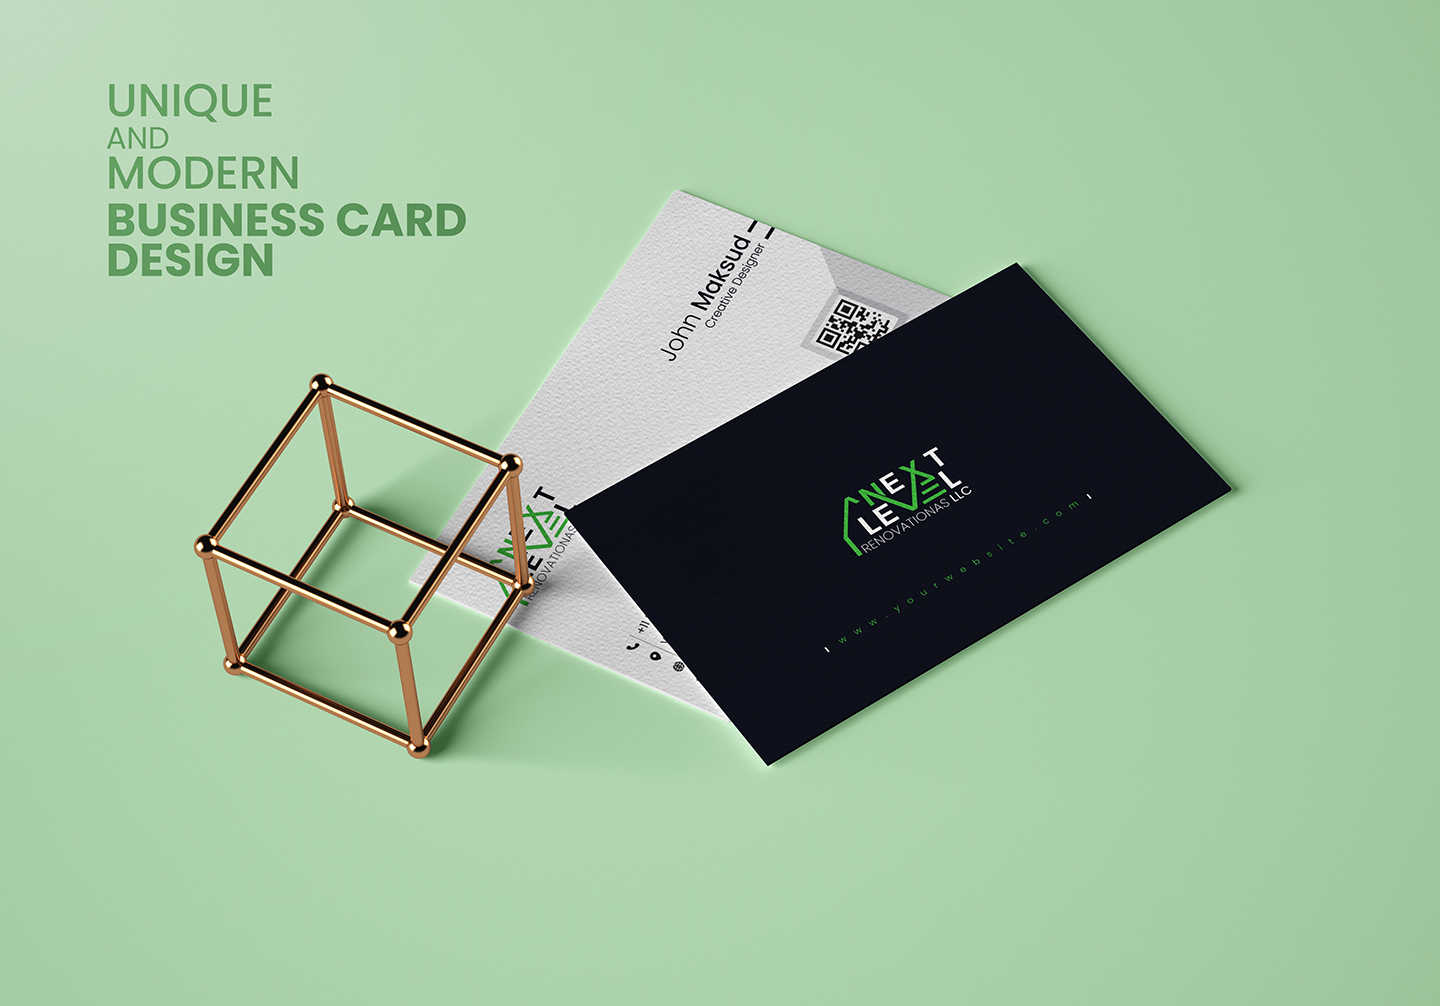 I will create unique and modern Business Card Design in 24 hours